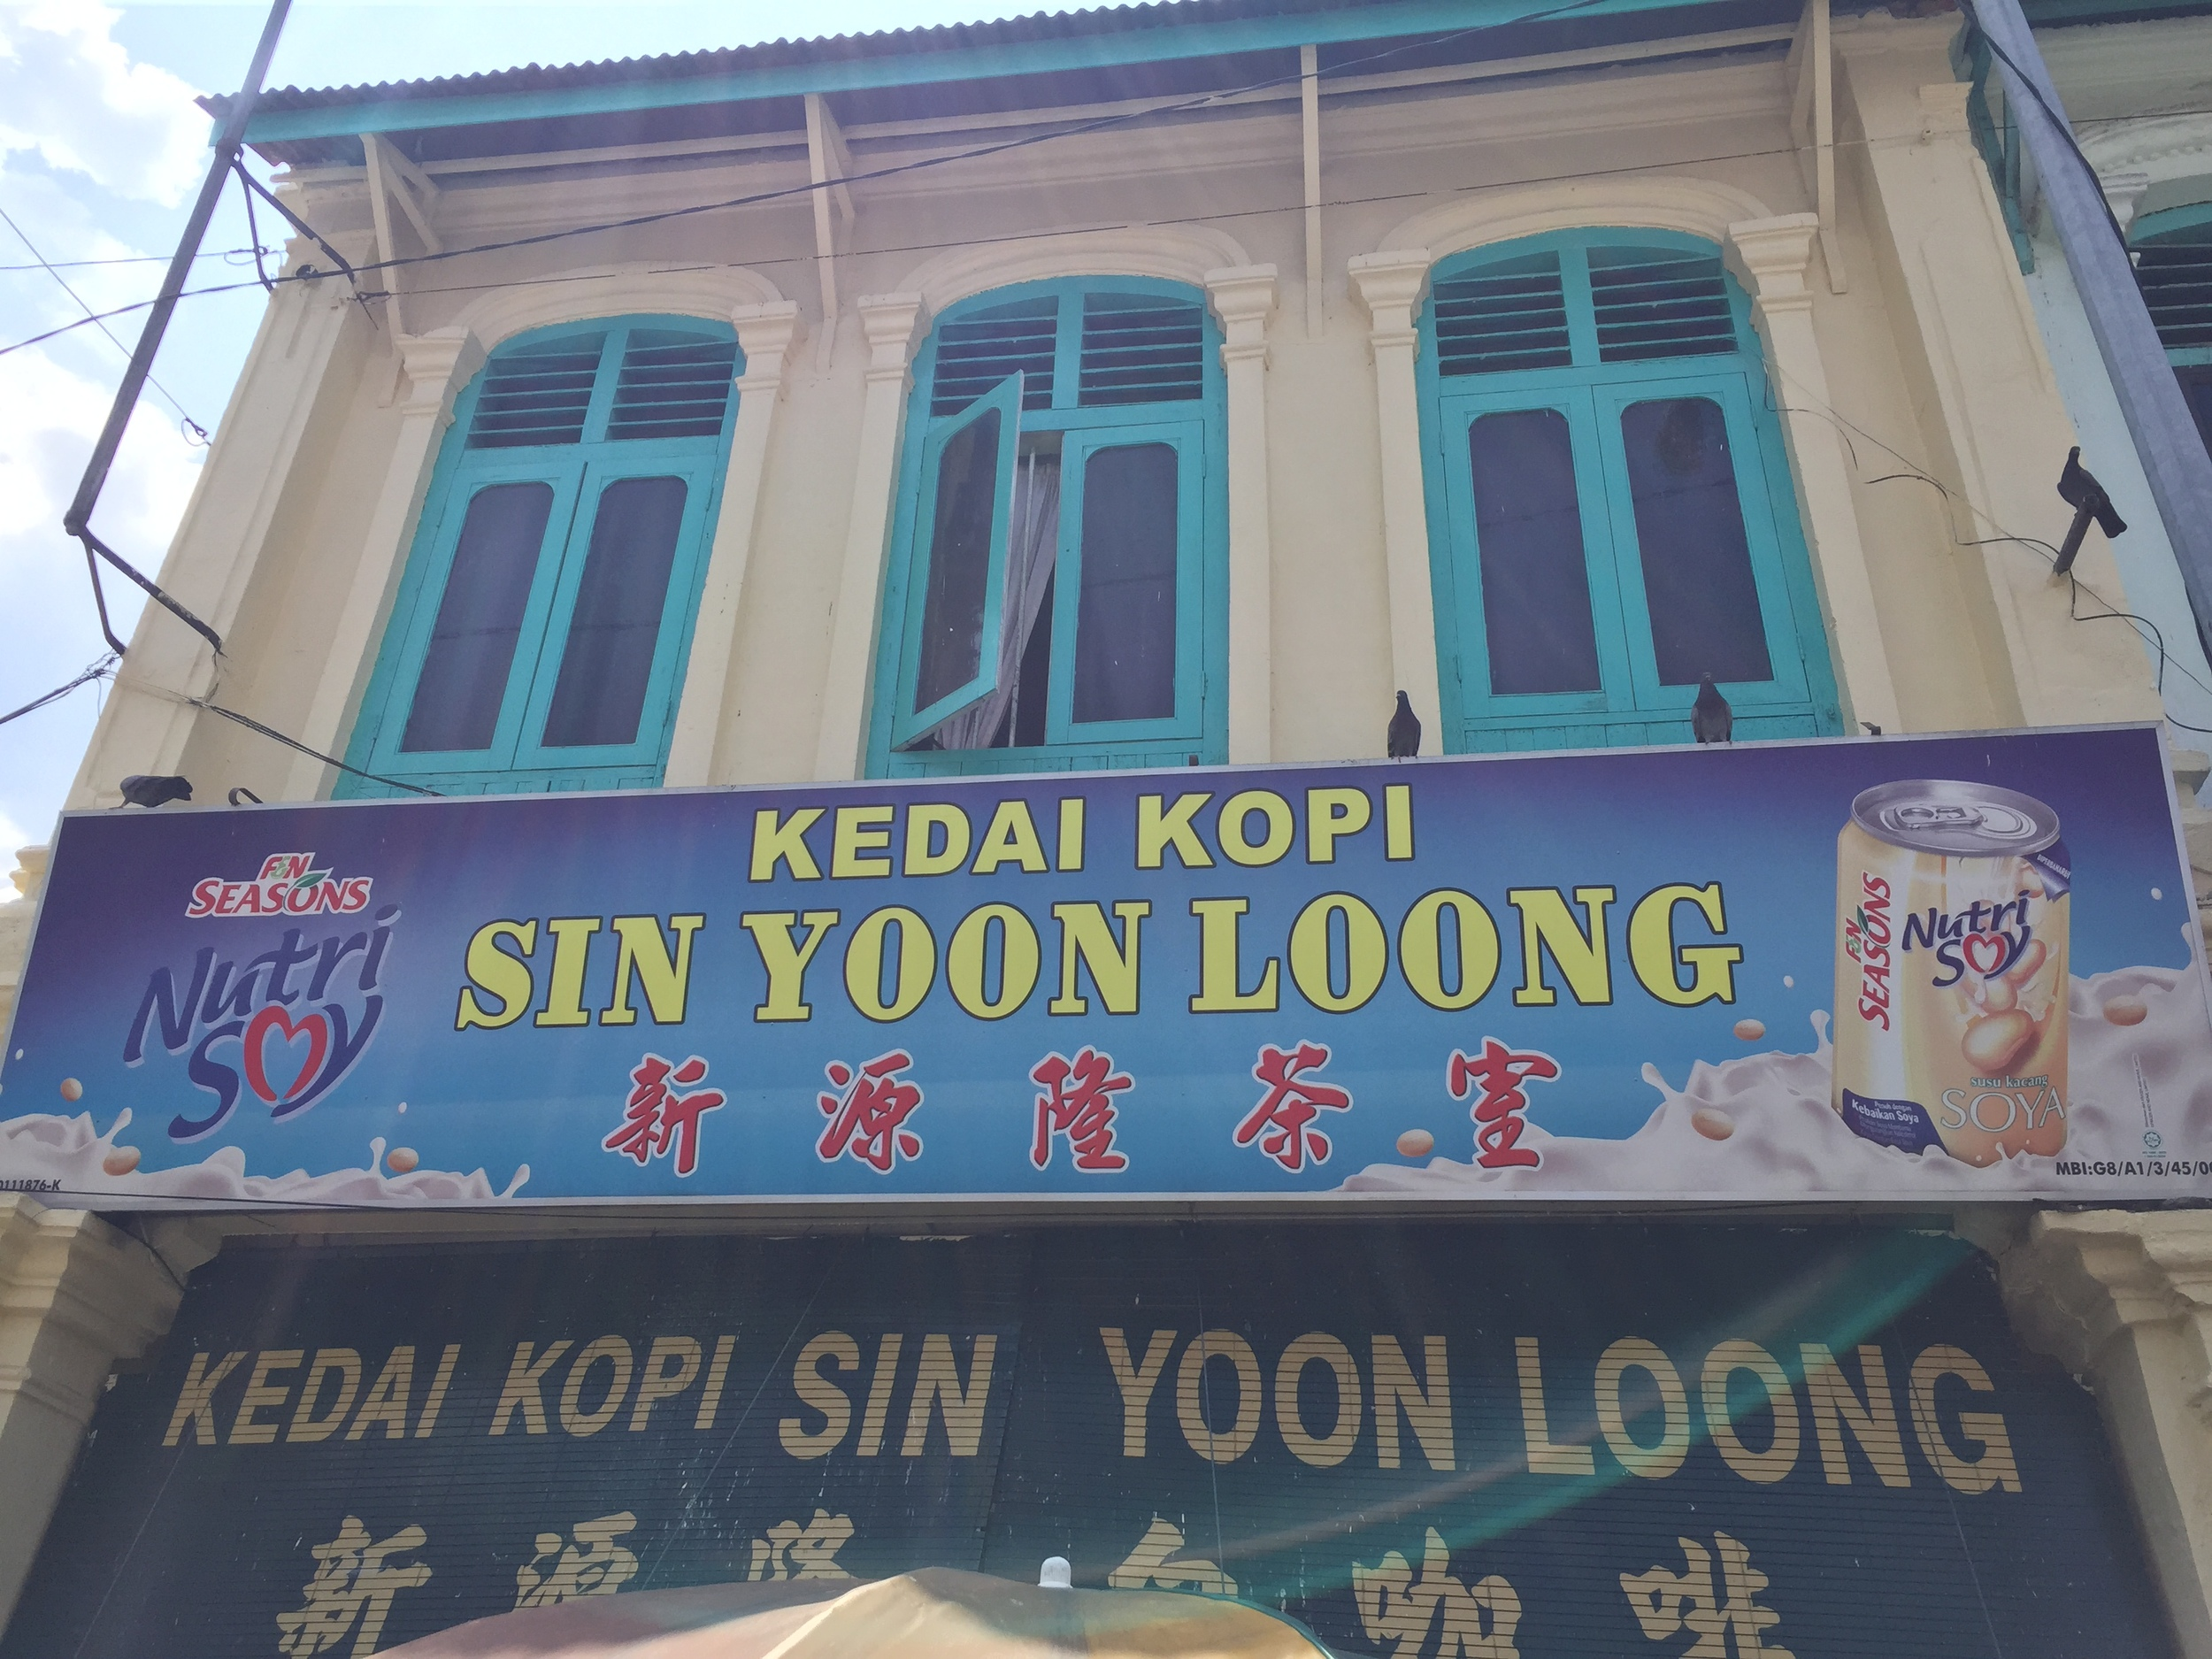 Visit this restaurant for the best place in Ipoh for coffee